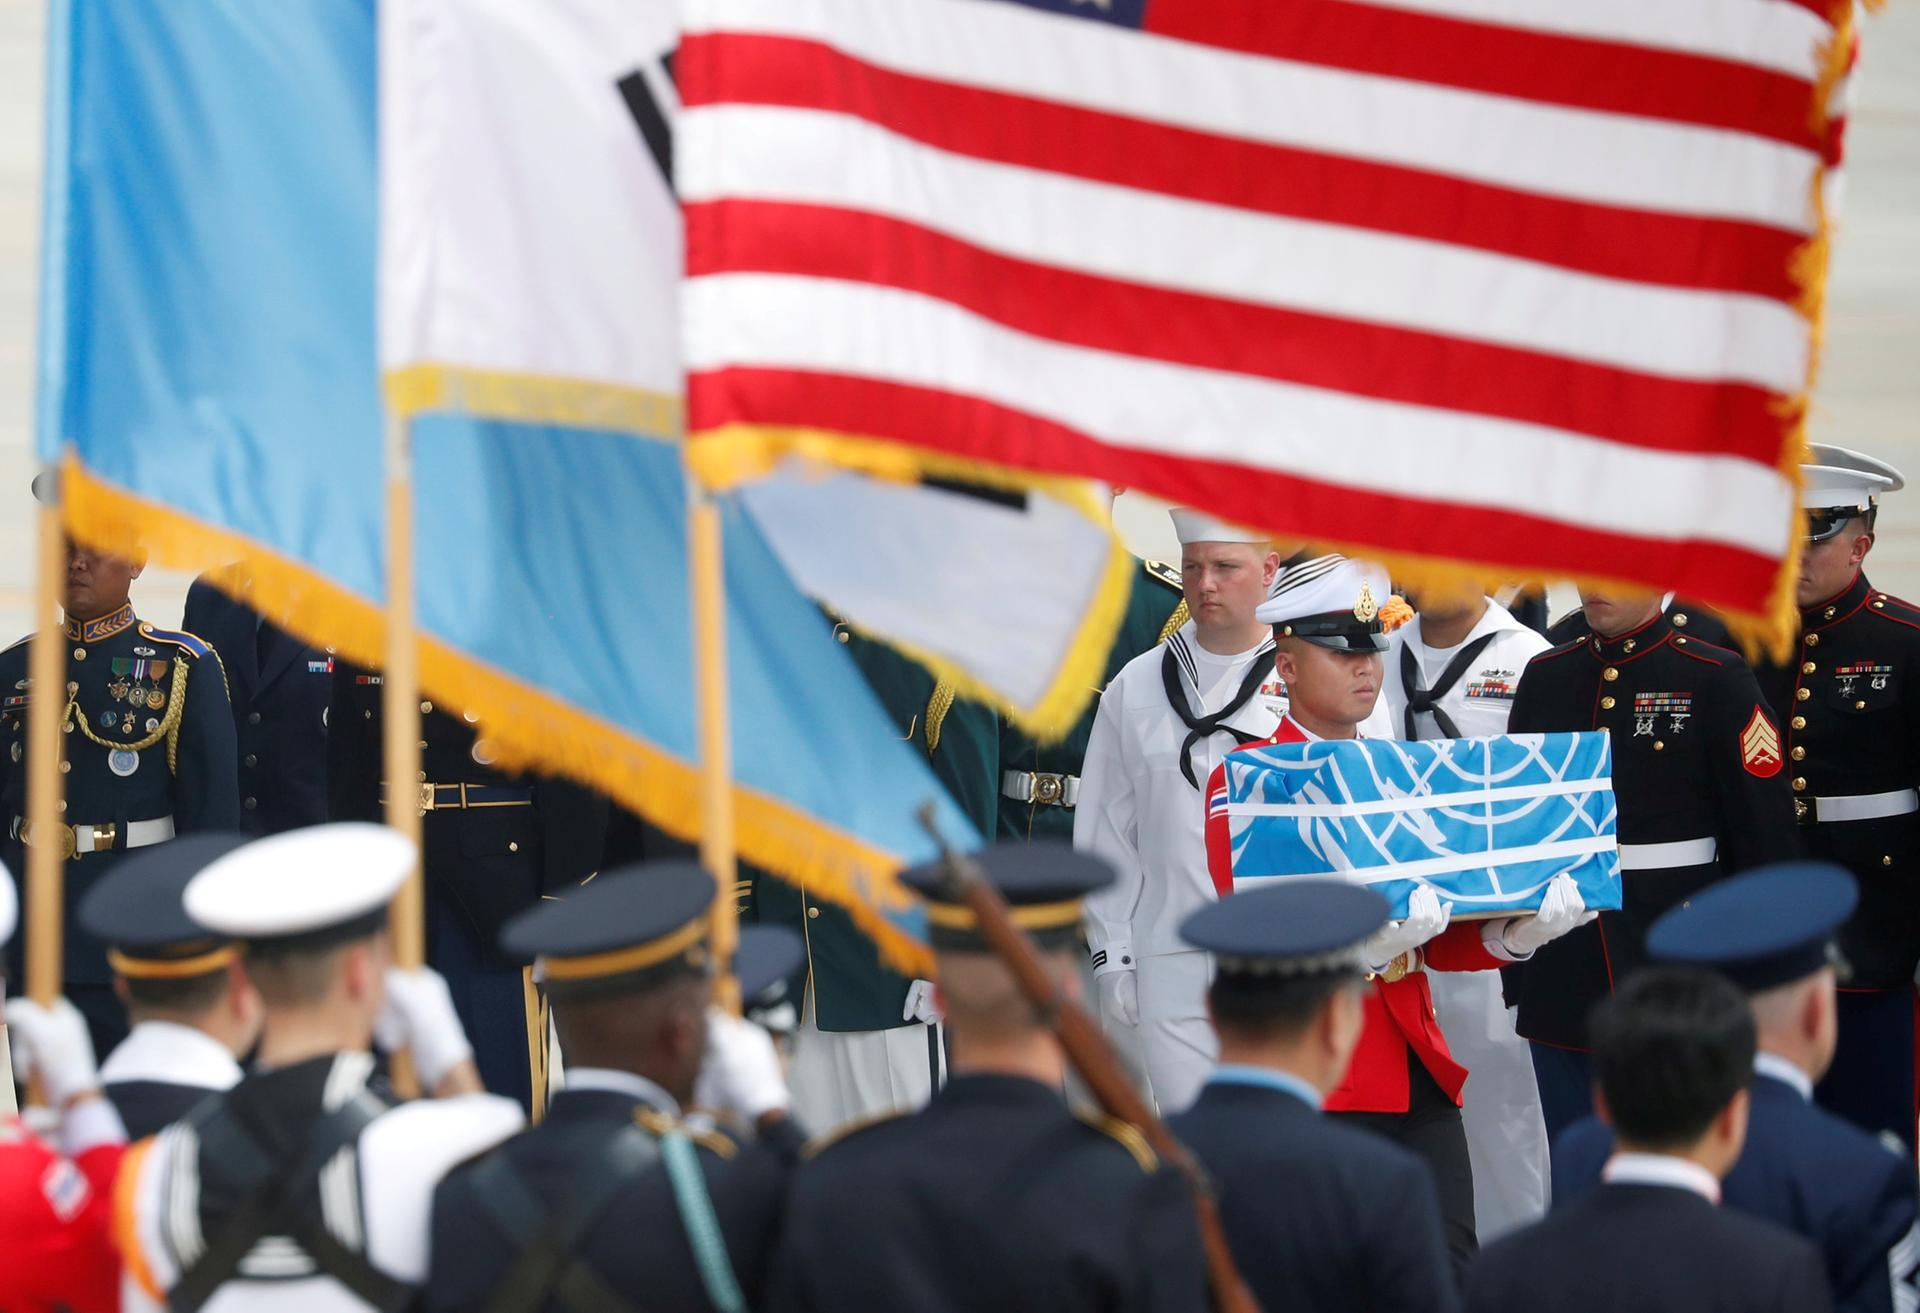 A soldier carries a casket containing the remains of a US soldier killed in the Korean War during a ceremony at Osan Air Base in Pyeongtaek, South Korea, on July 27, 2018. (Reuters)